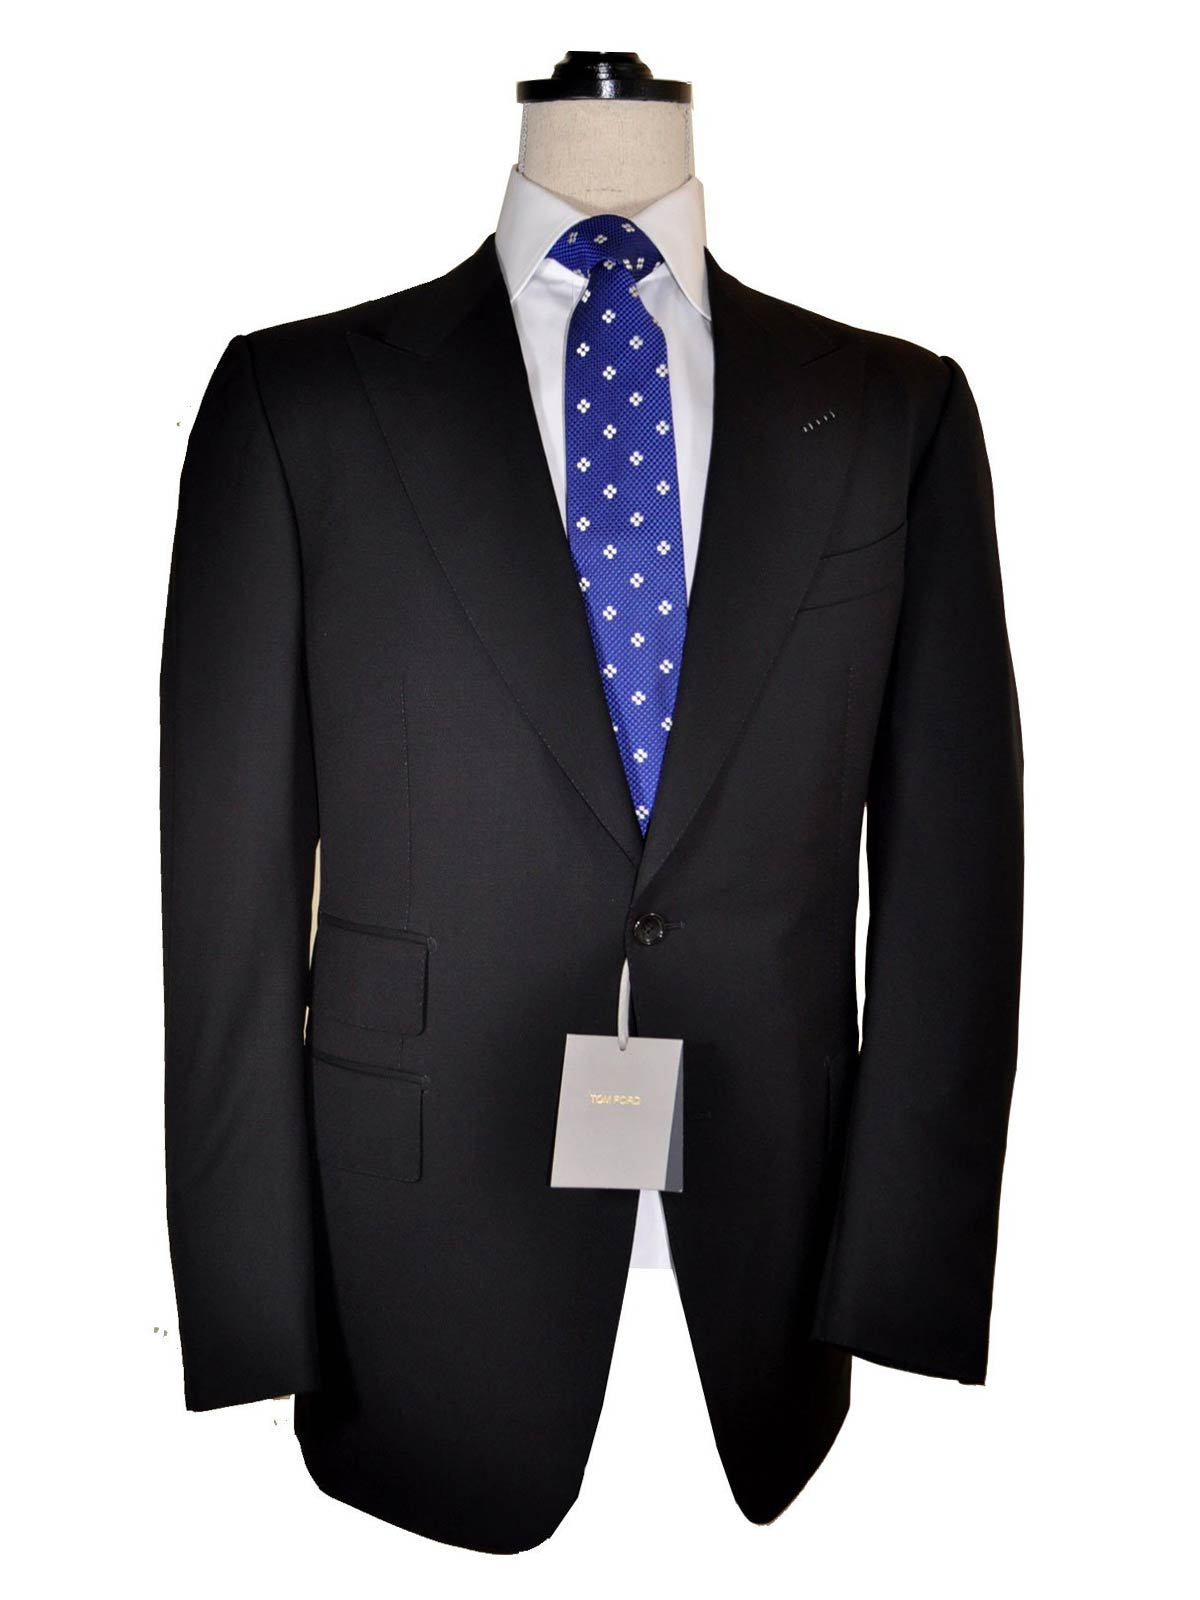 Tom Ford Suit Dark Gray Eur 58l Us 46 Long Reduced Sale Tie Deals